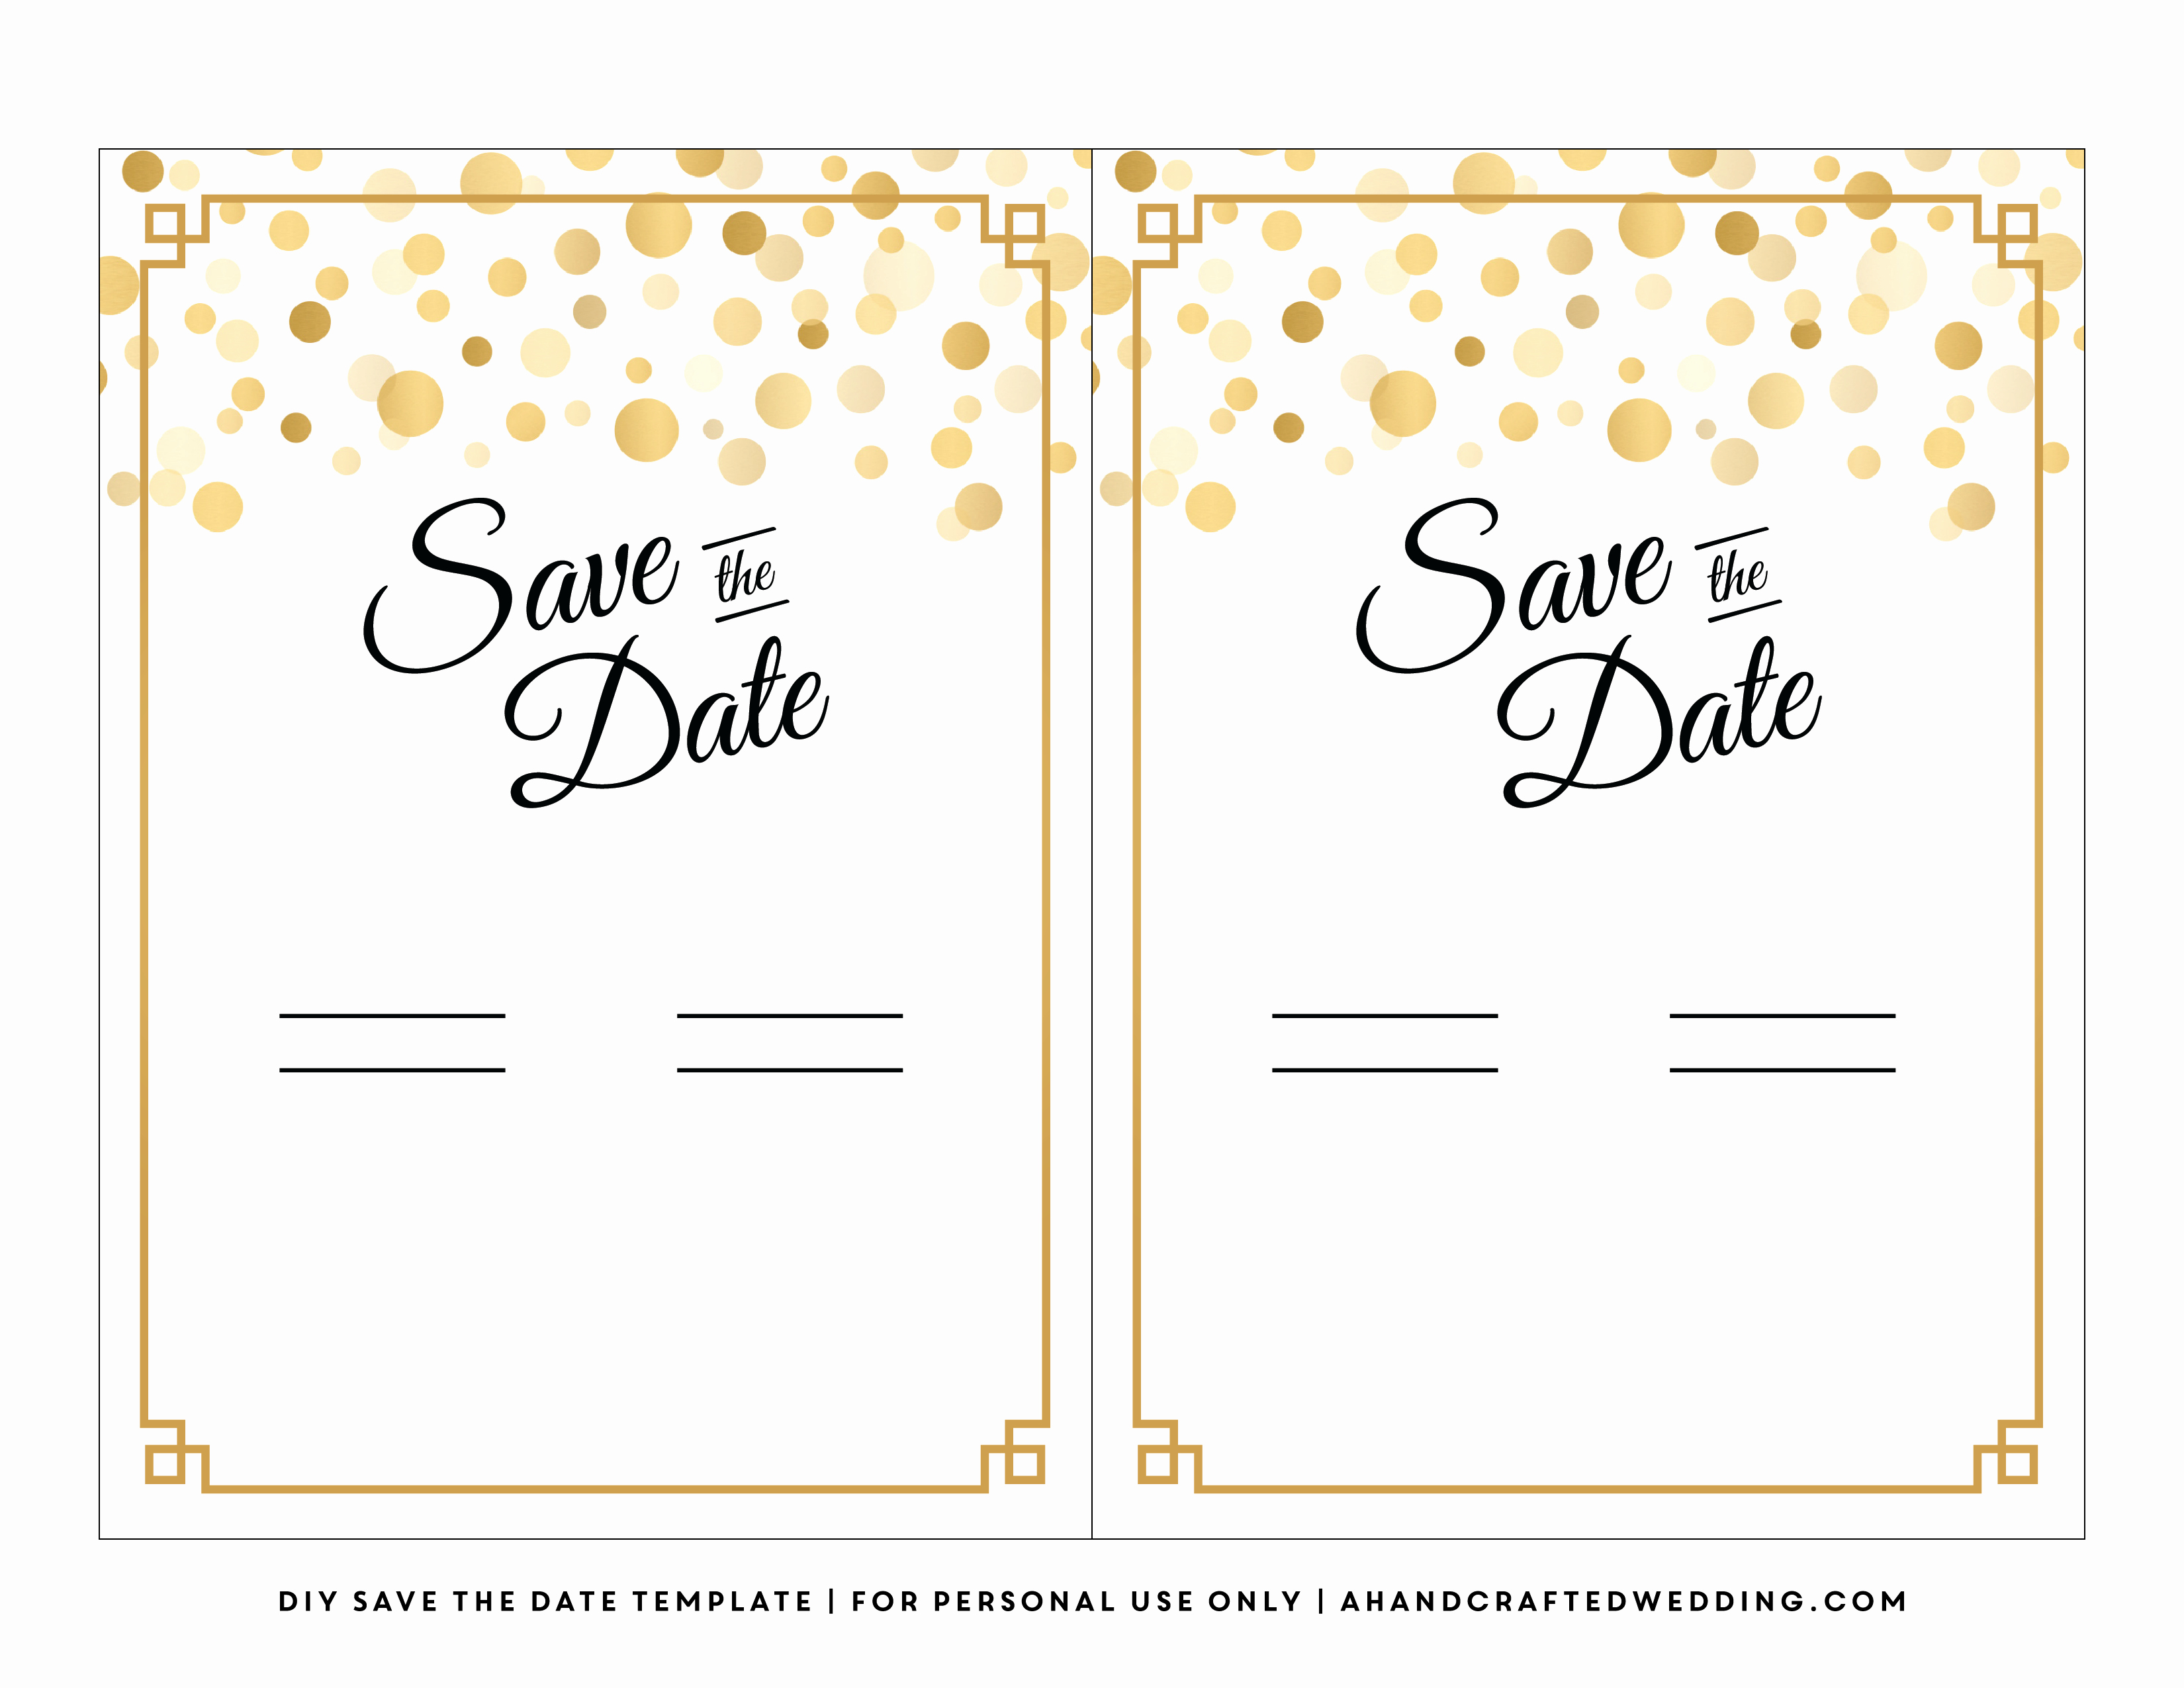 7 Best Of Diy Save the Date Template Halloween